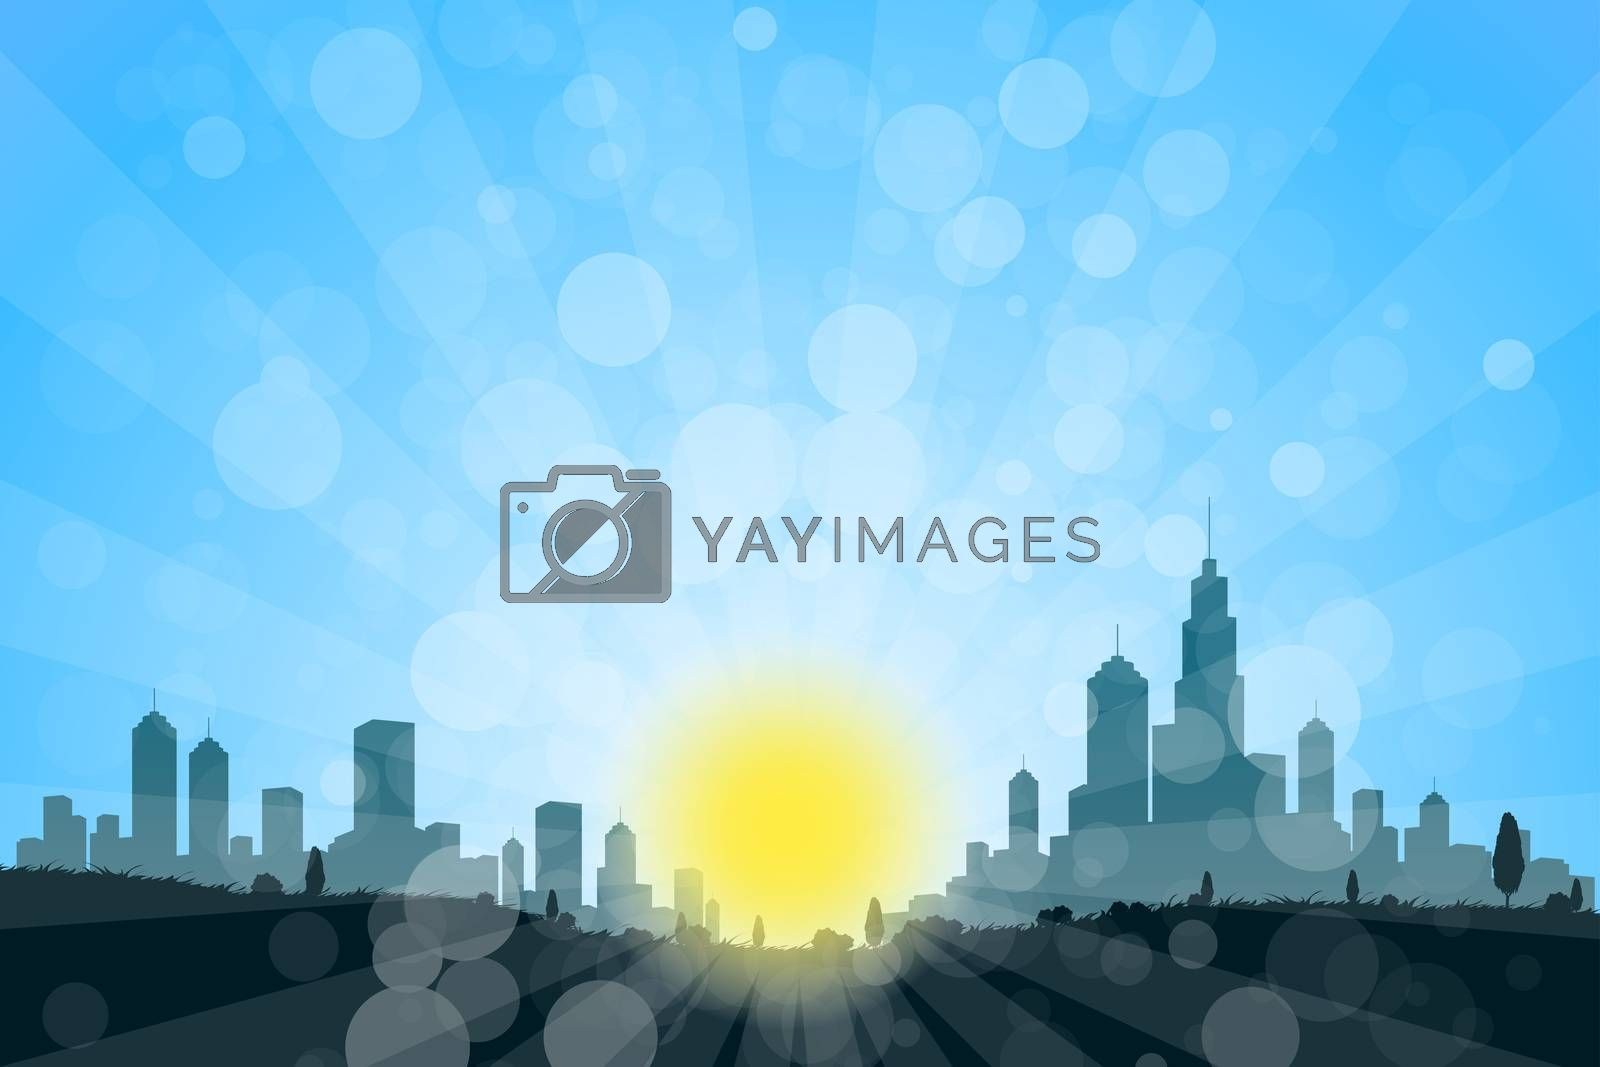 Nature Landscape with City Silhouette by WaD